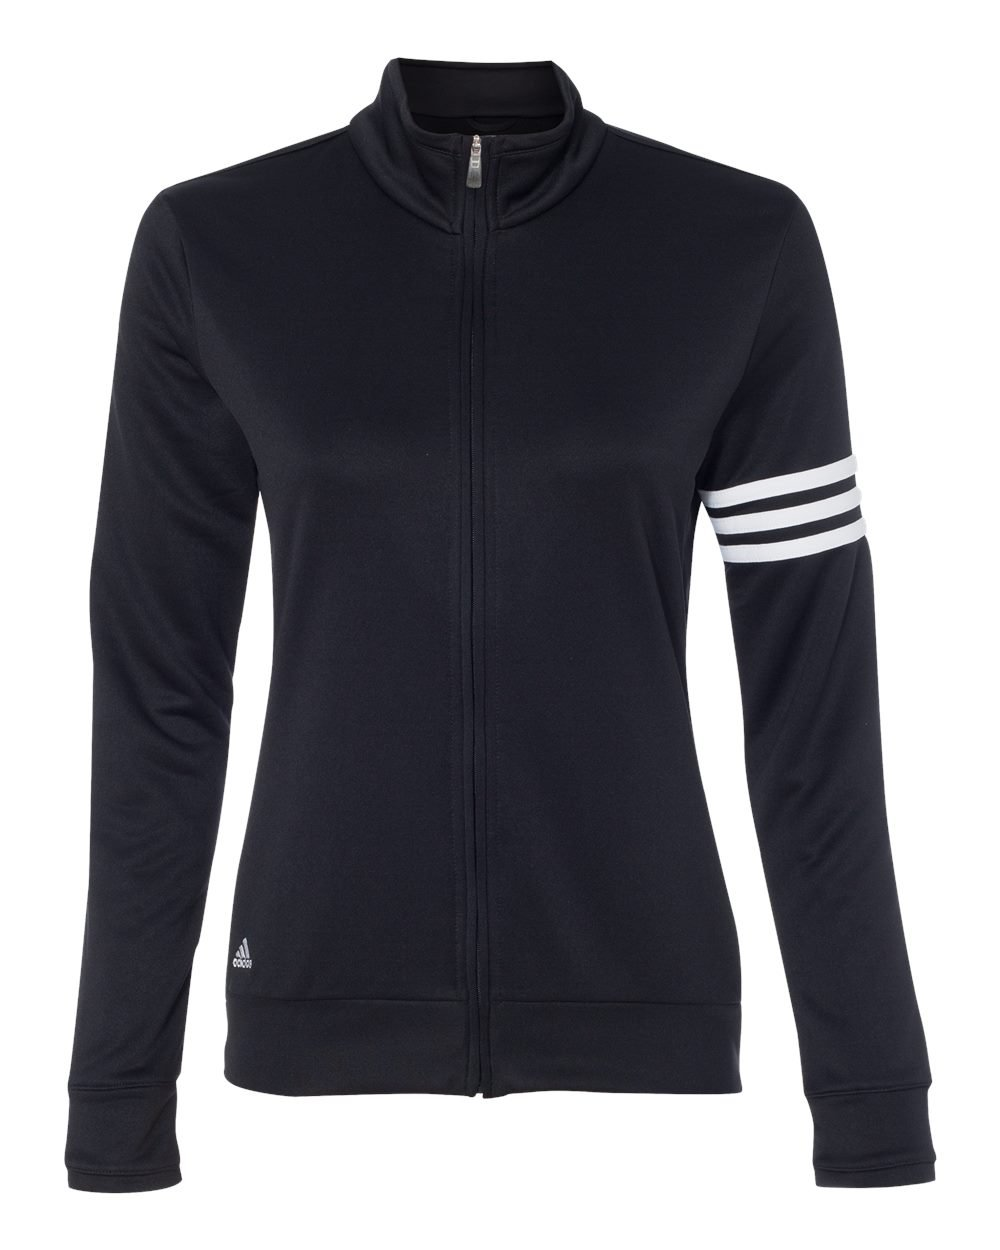 adidas Womens climalite 3-Stripes Pullover A191 -BLACK/ WHITE S